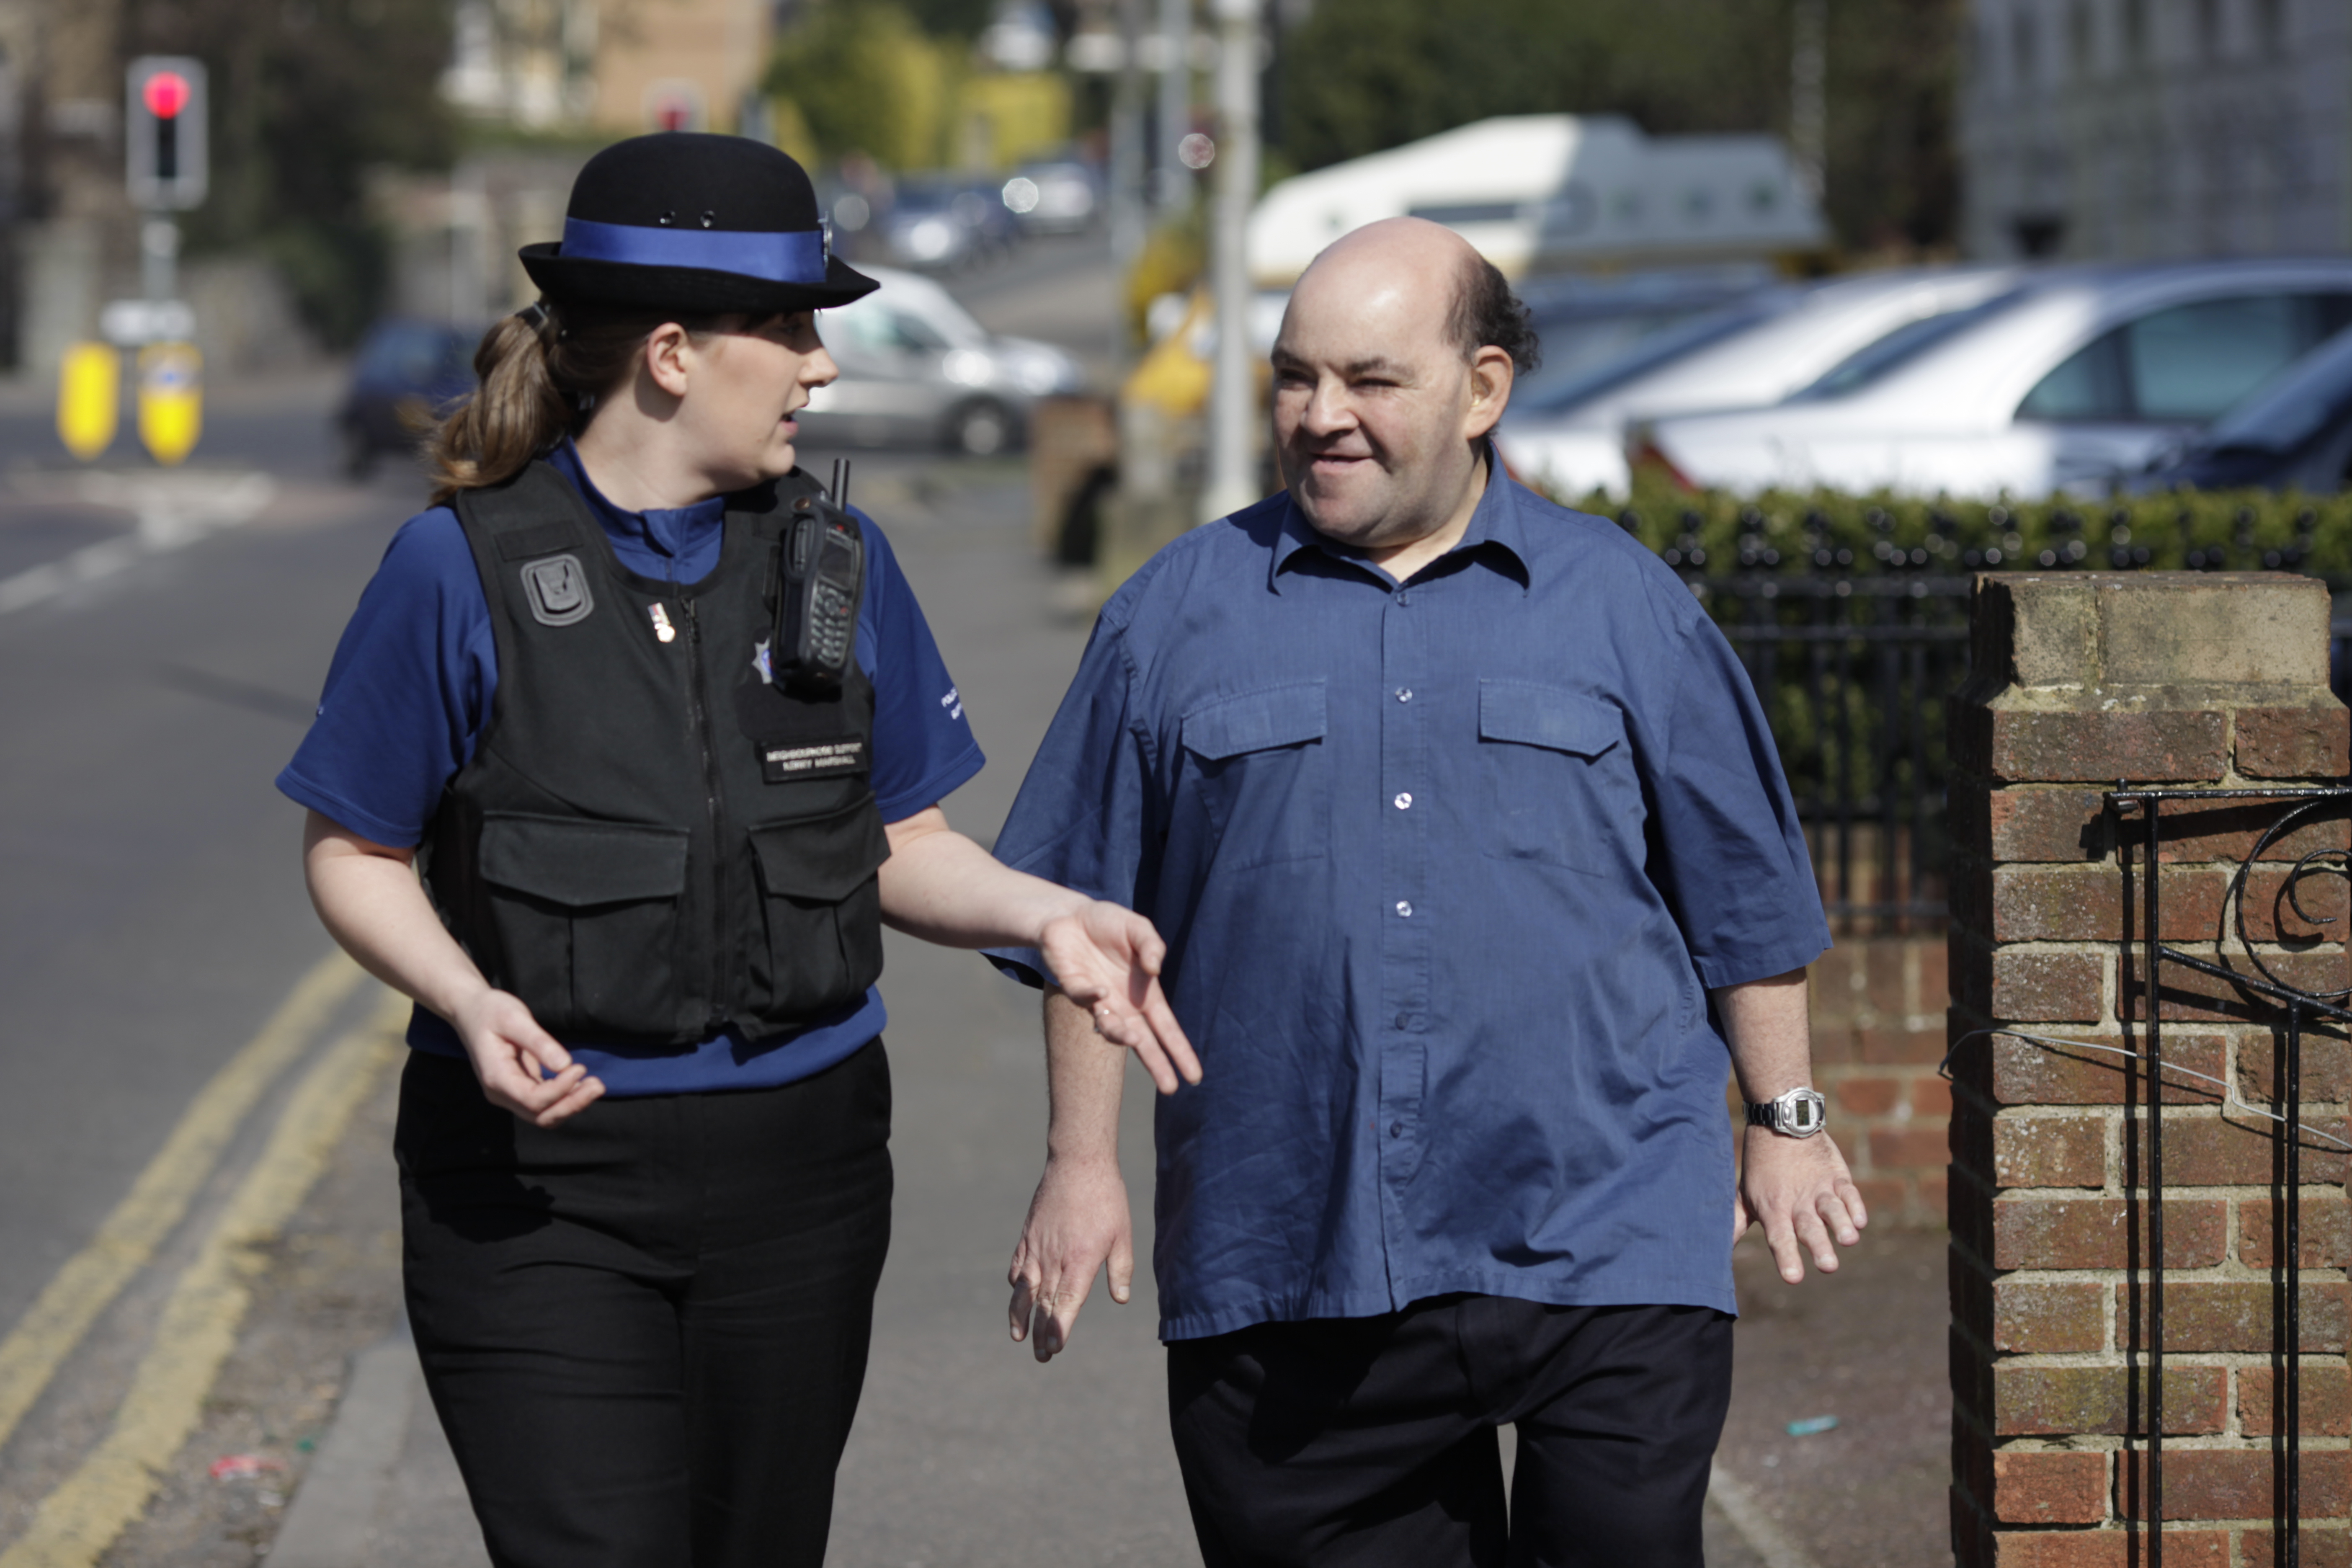 Mencap respond to 40% increase in disability hate crimes in past year